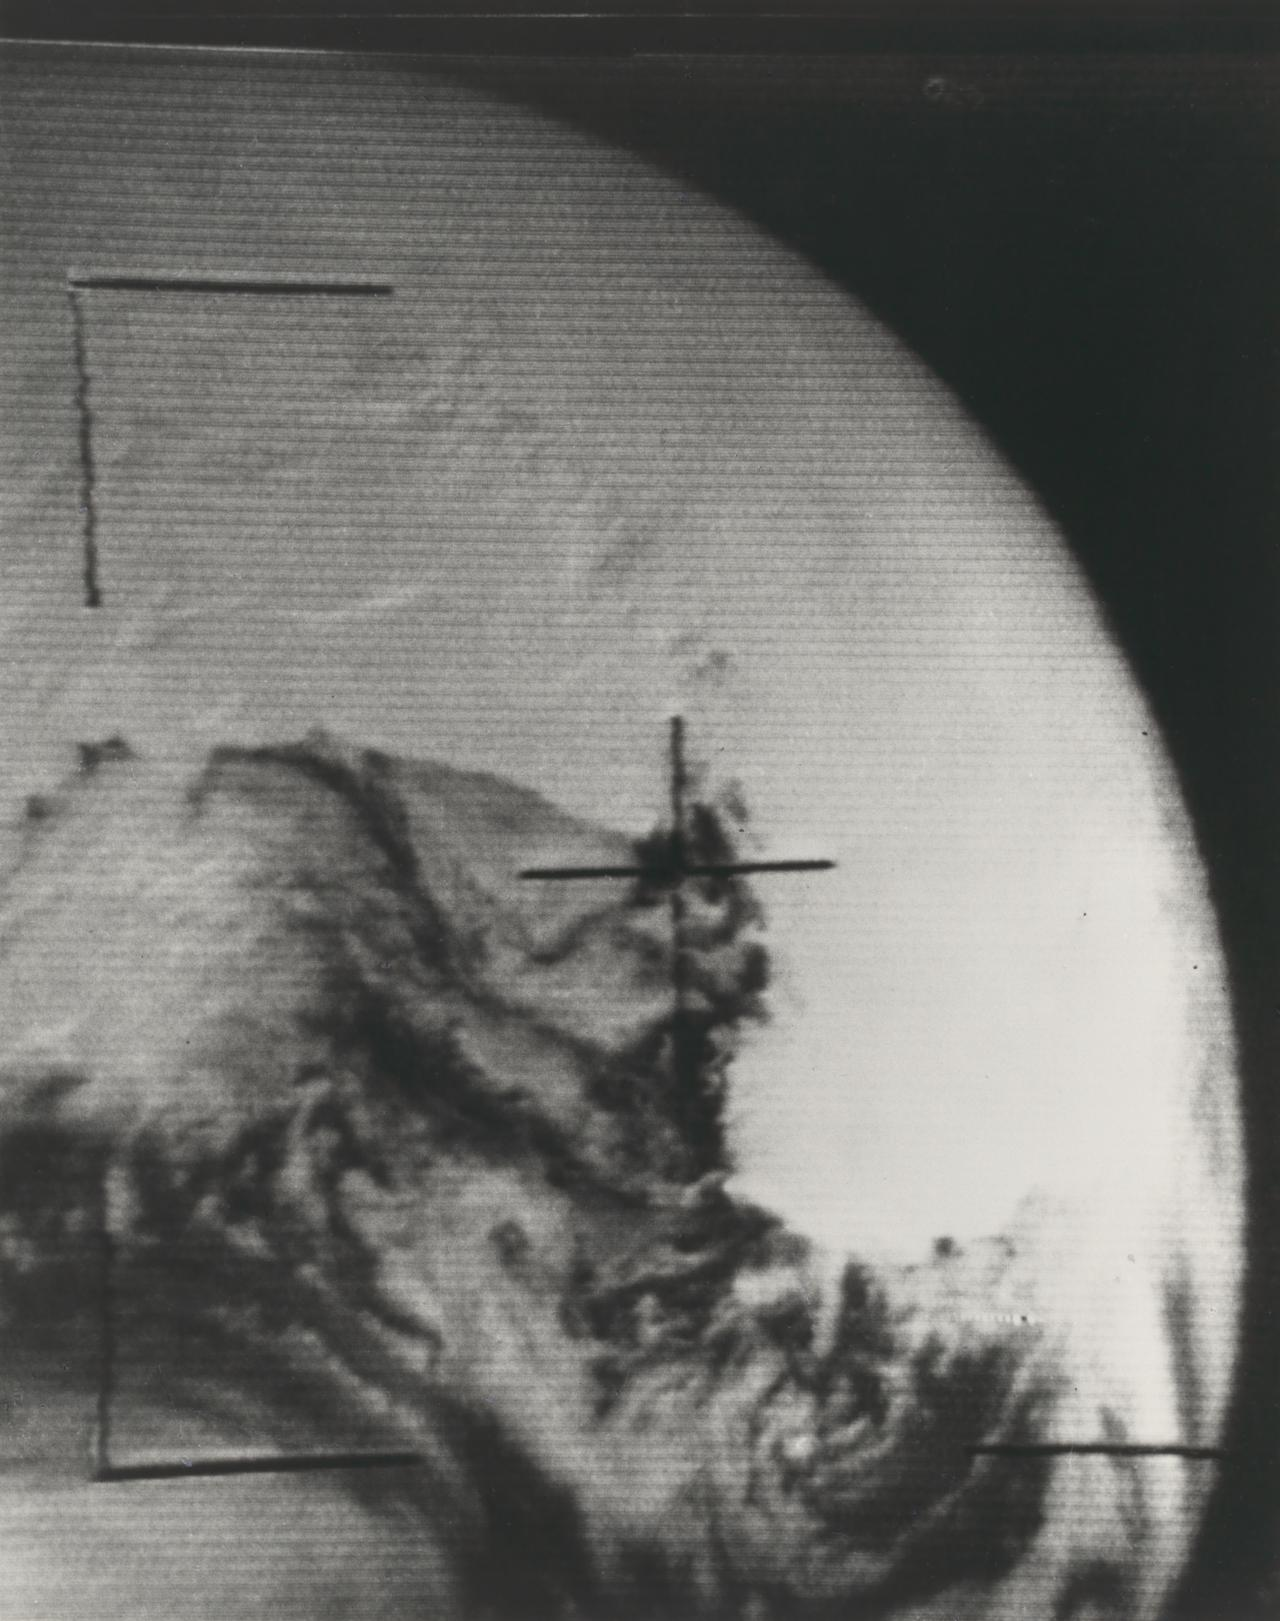 The Antarctic Continent, photographed 23 Jan 1965, by TIROS IX weather satellite